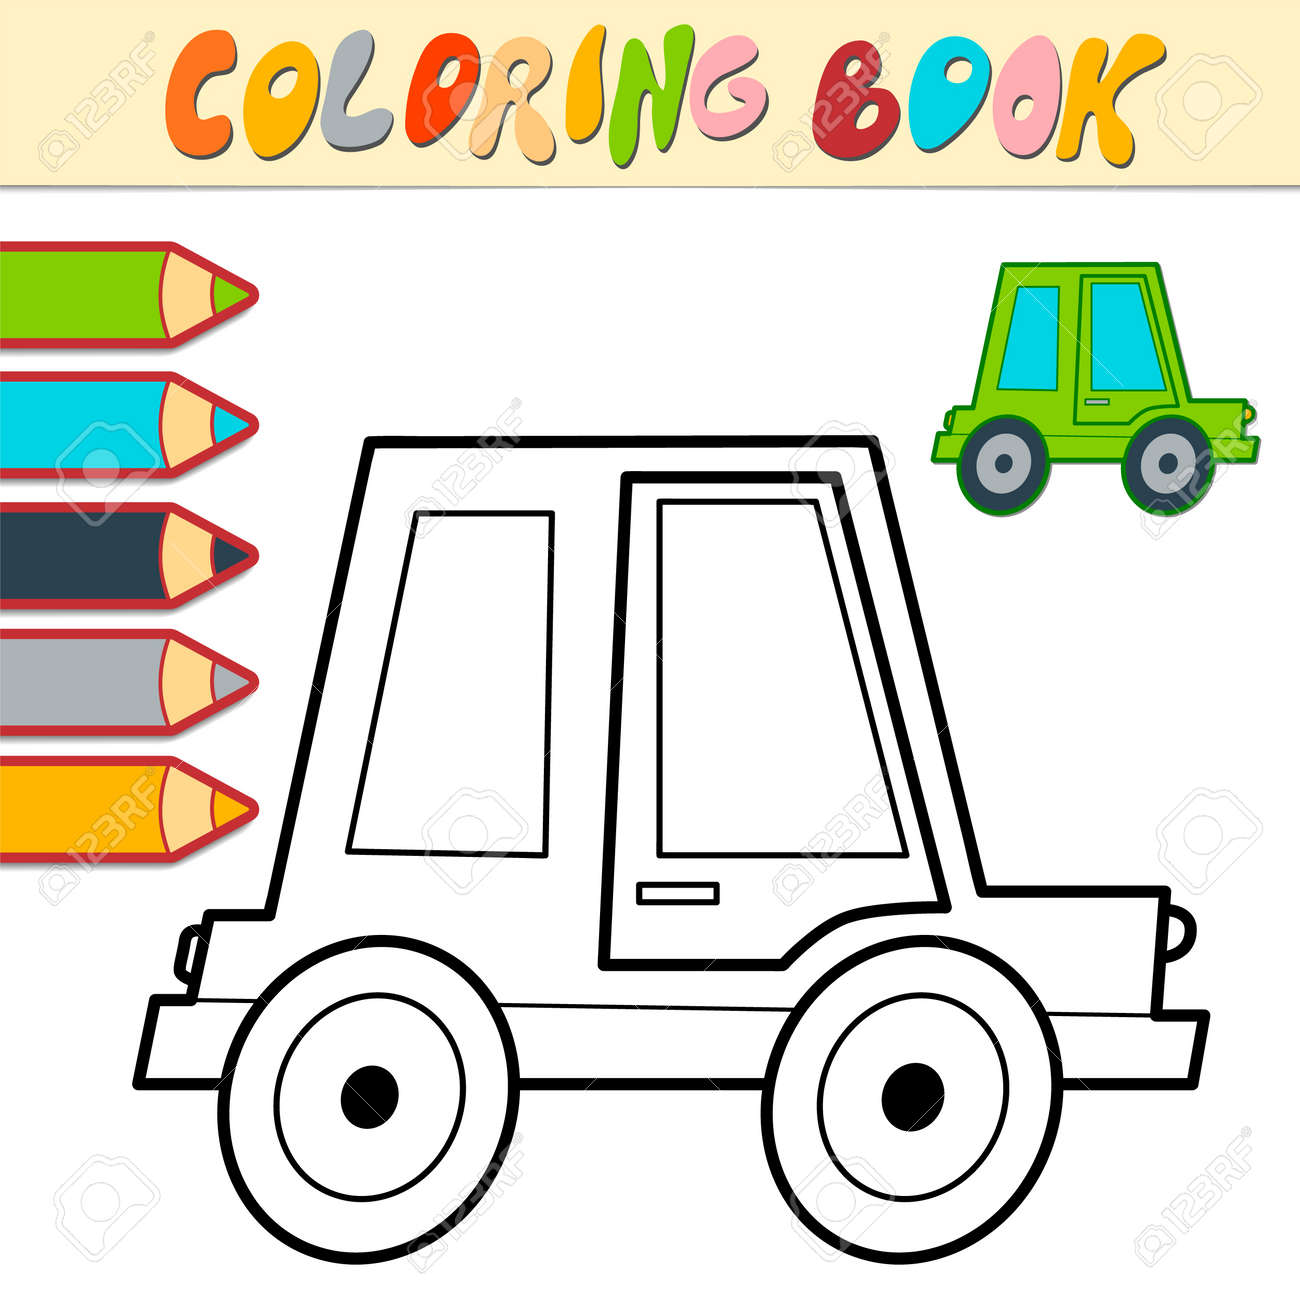 Coloring book or page for kids. car black and white vector illustration - 168779460